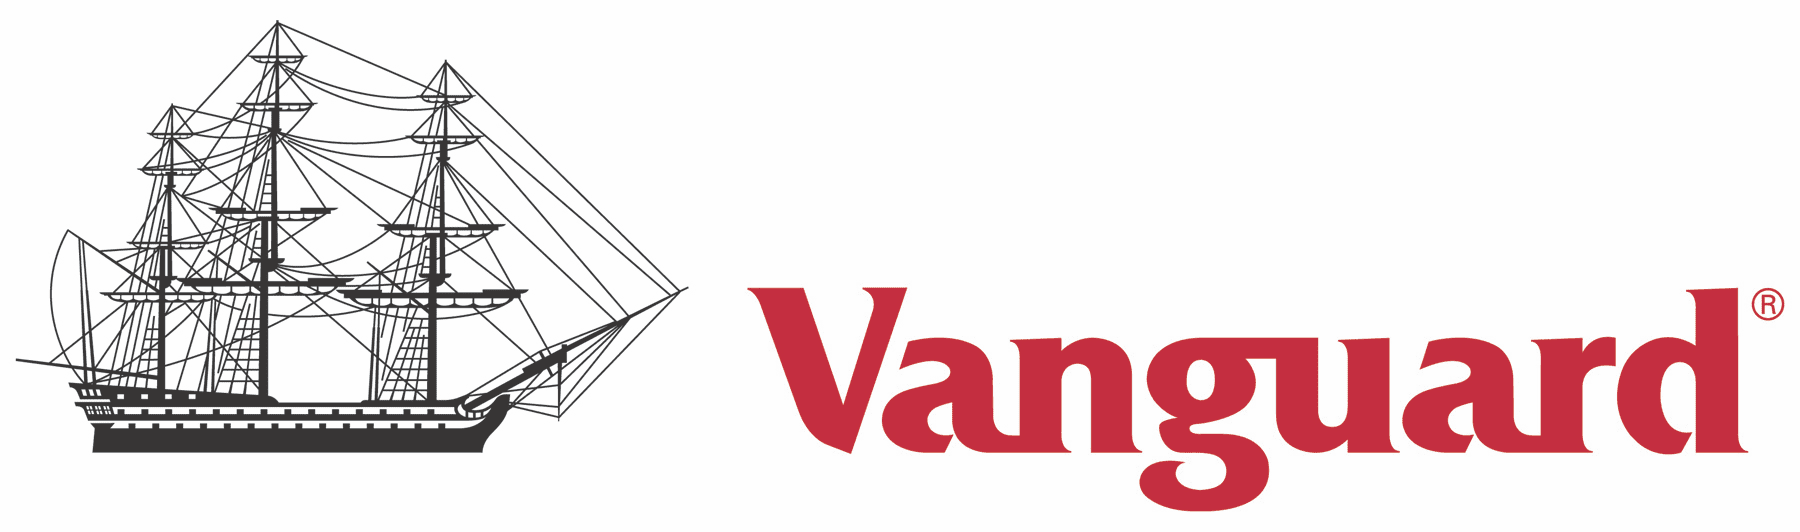 Complaints about vanguard investments fax strategy forex vincenti decoys